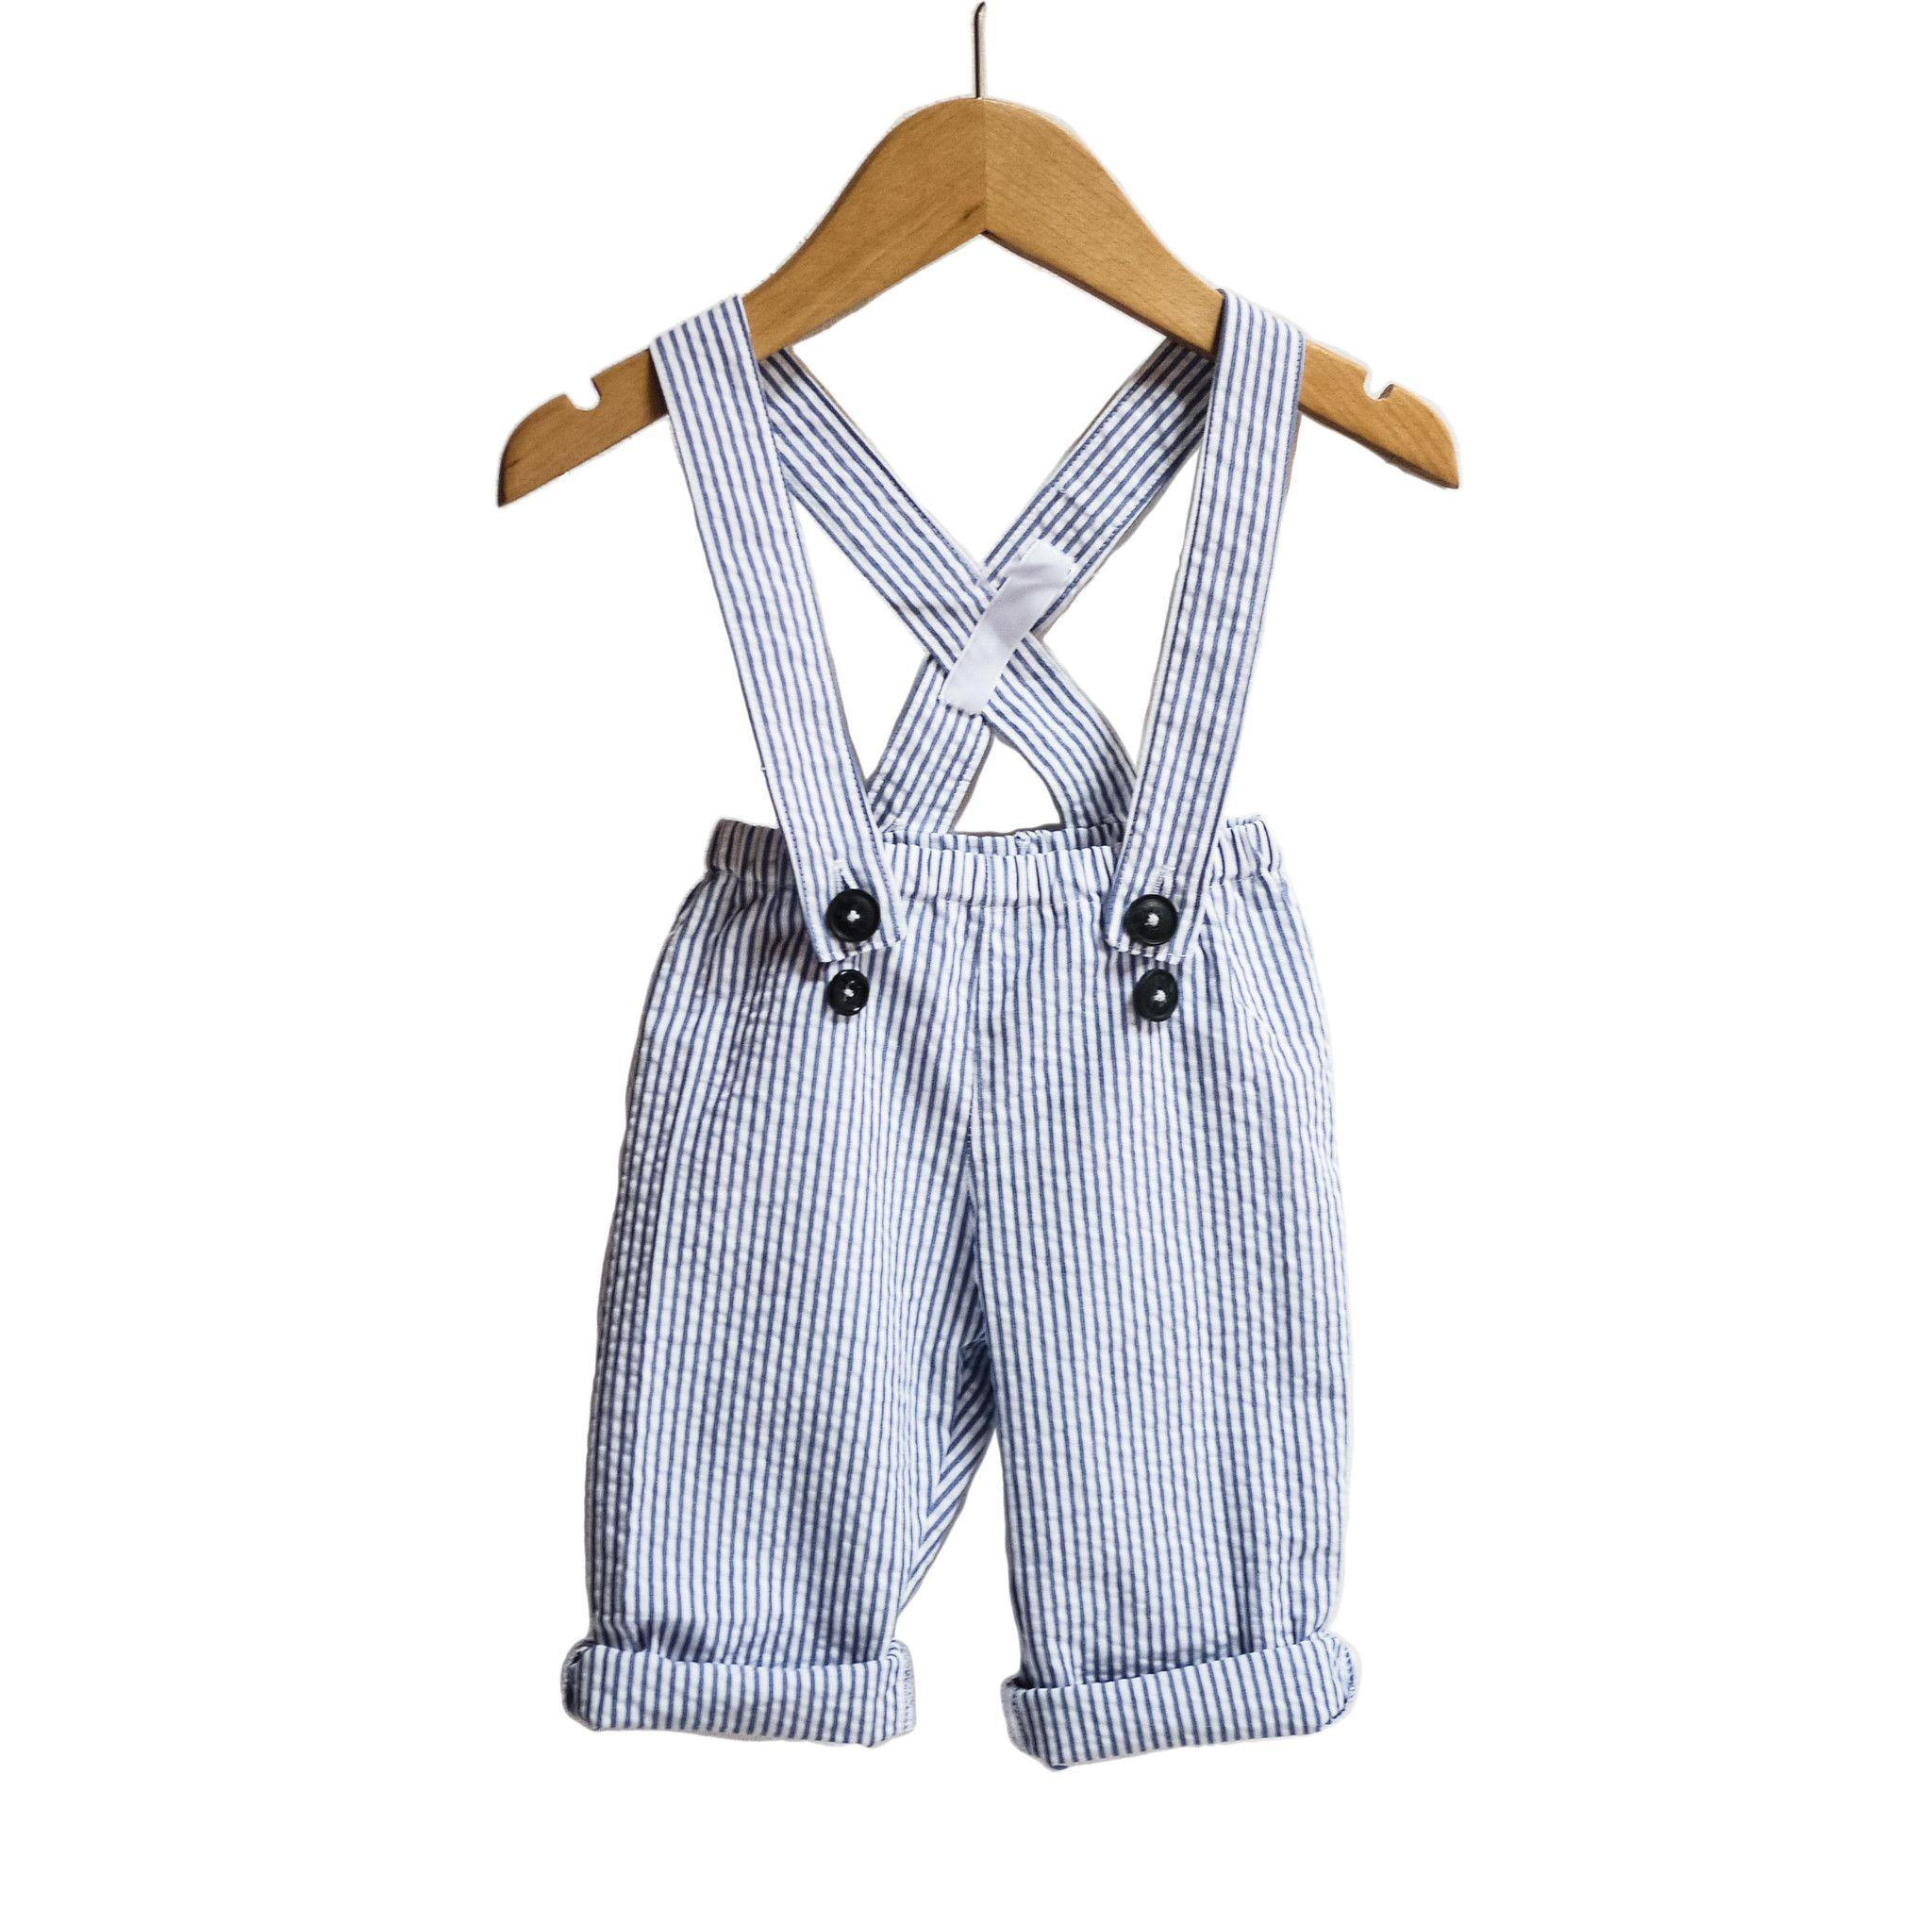 Pants or shorty pants with suspenders pdf sewing pattern pants or shorty pants with suspenders pdf sewing pattern guidebook baby boy suspenders sewing pattern jeuxipadfo Choice Image